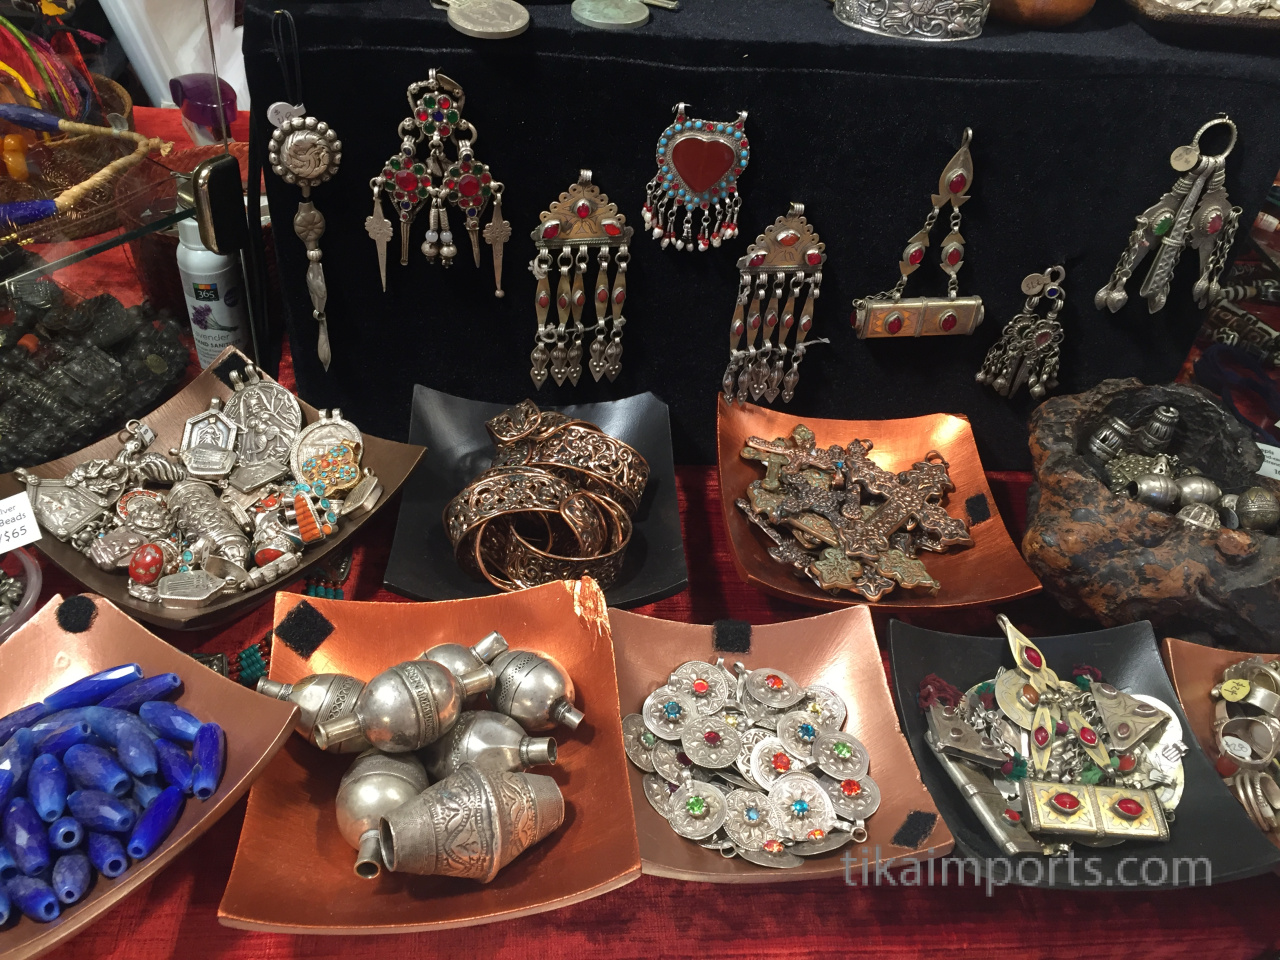 a collection of Tika treasures